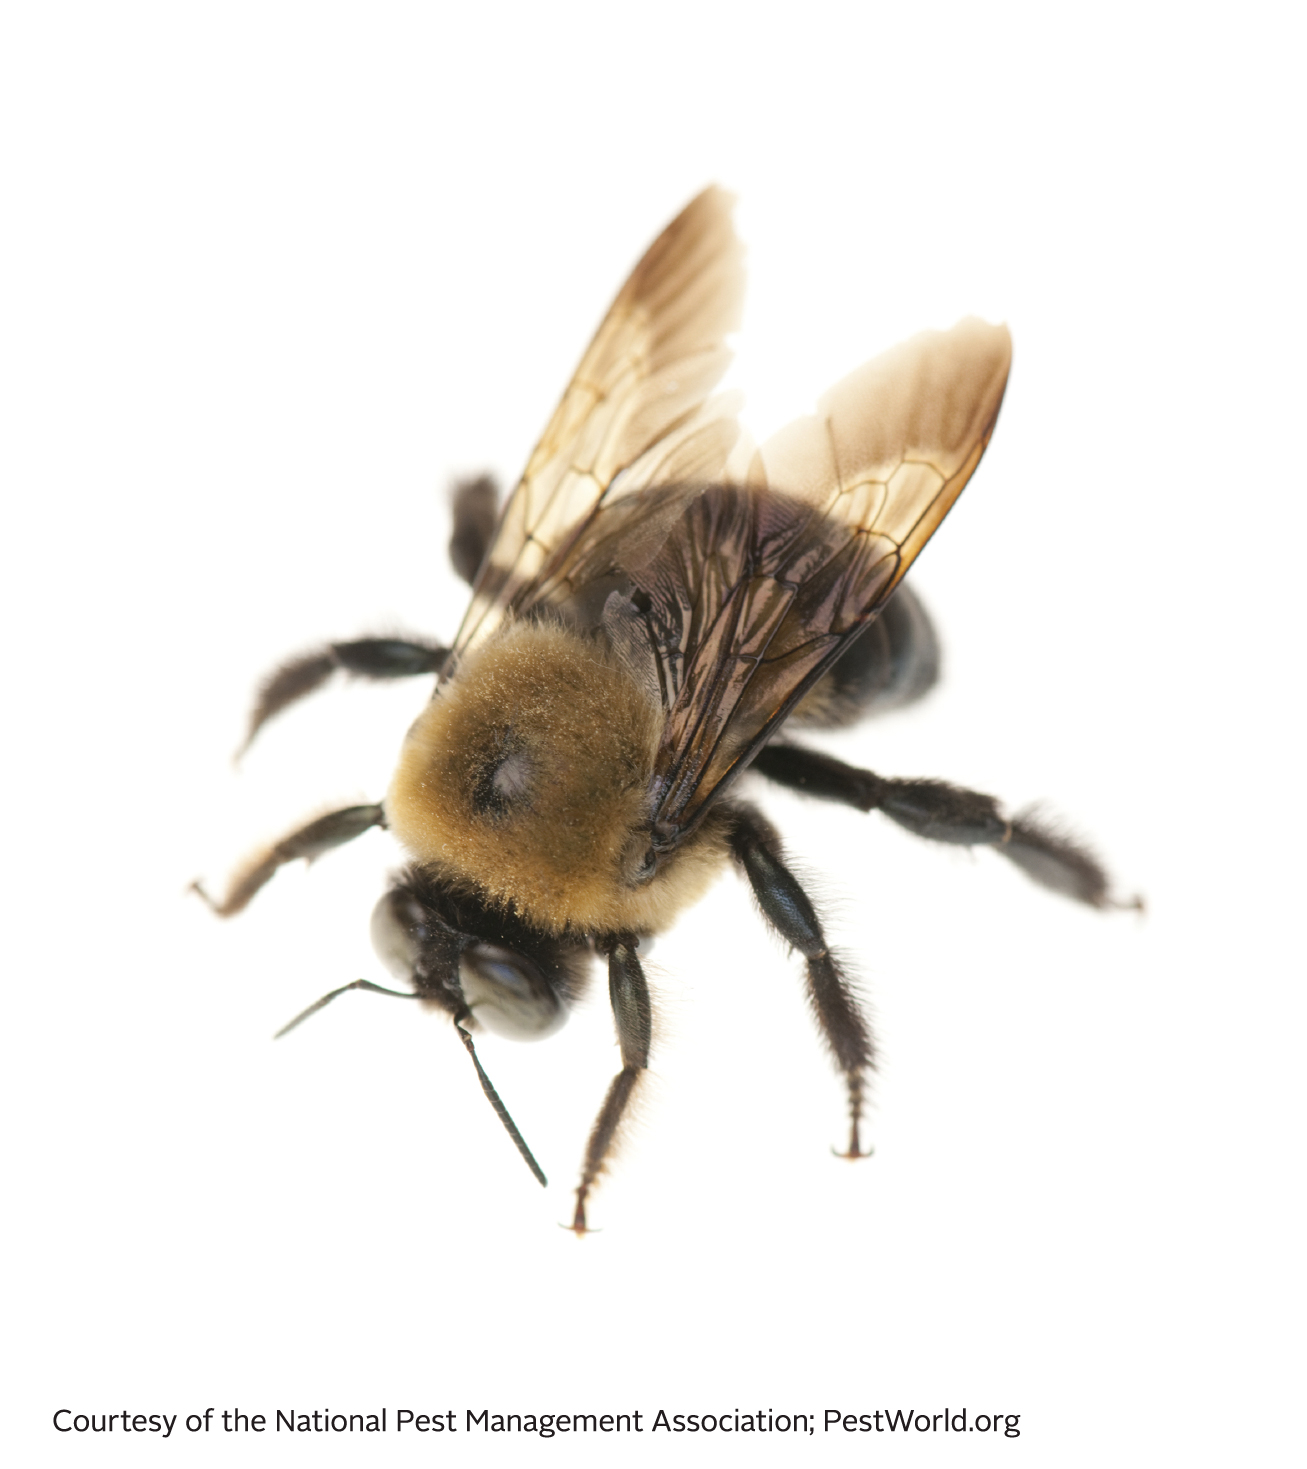 Bees clipart carpenter bee. Image facts about types